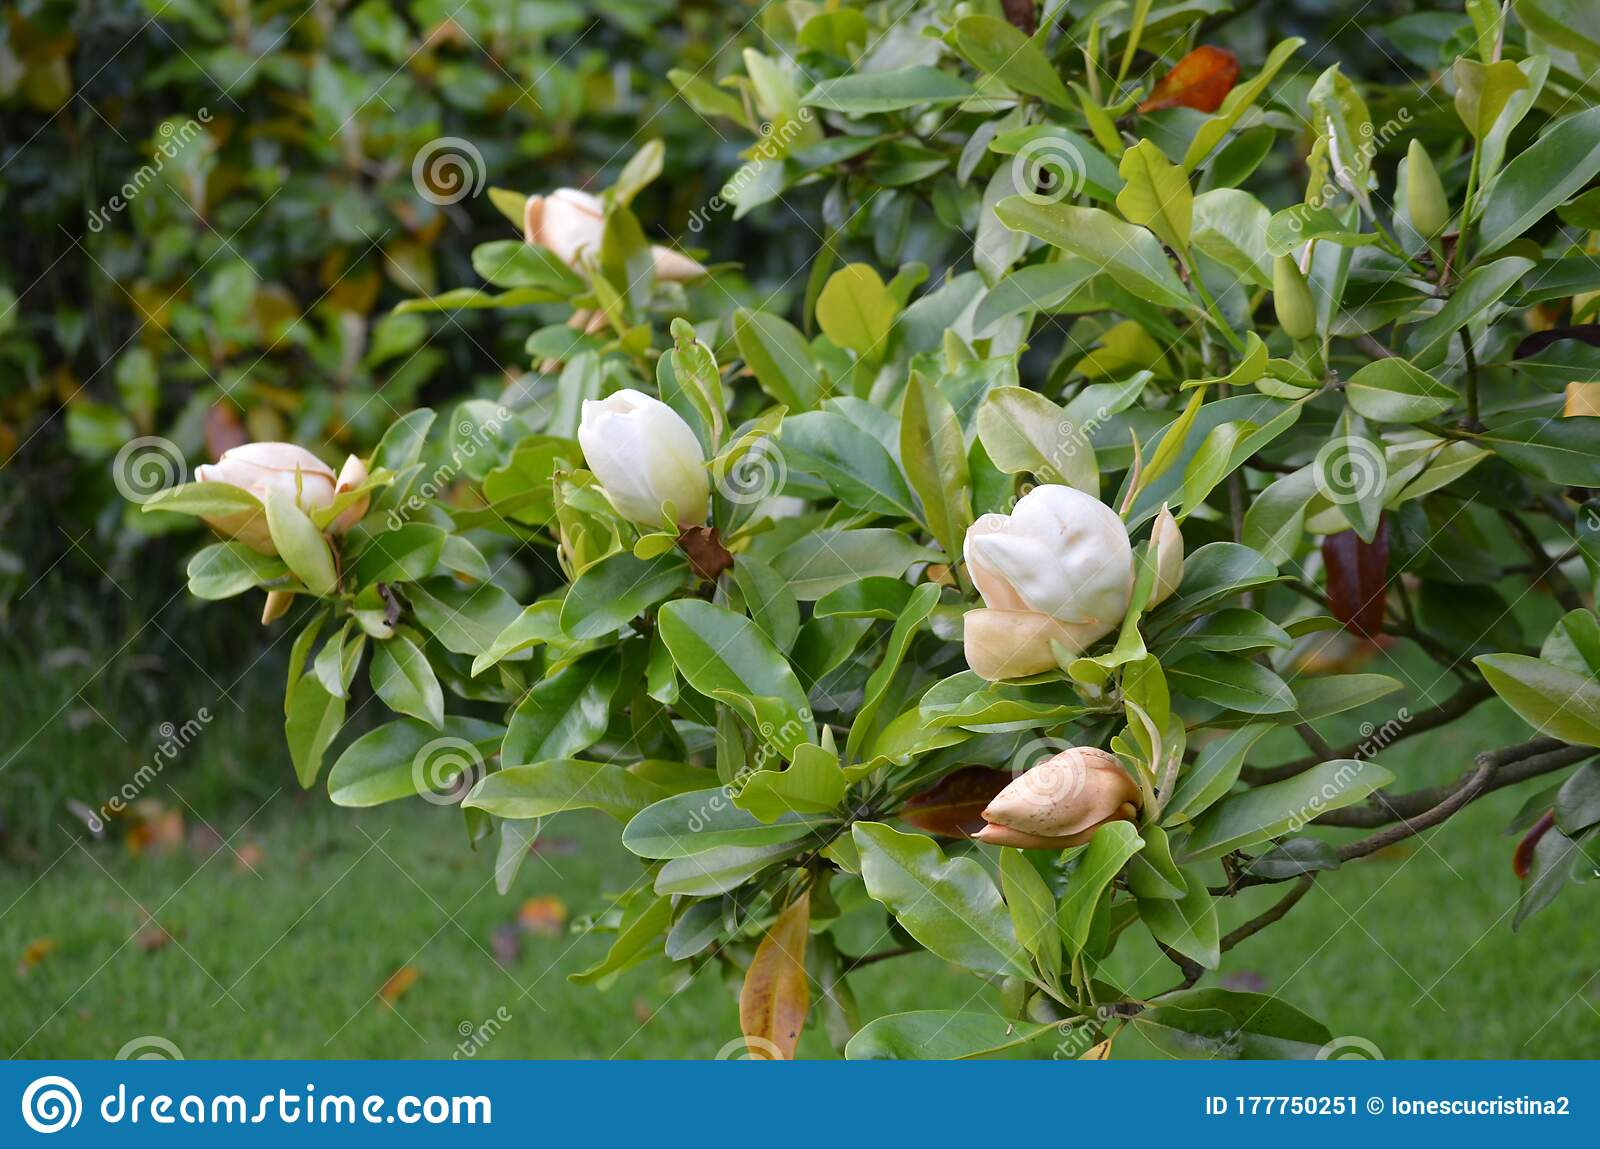 Close Up Of One Delicate White Flower Of Ficus Tree In A Cloudy Day In A Summer In France Beautiful Outdoor Floral Background Ph Stock Image Image Of White Bloom 177750251,Steamed Broccoli Brockly